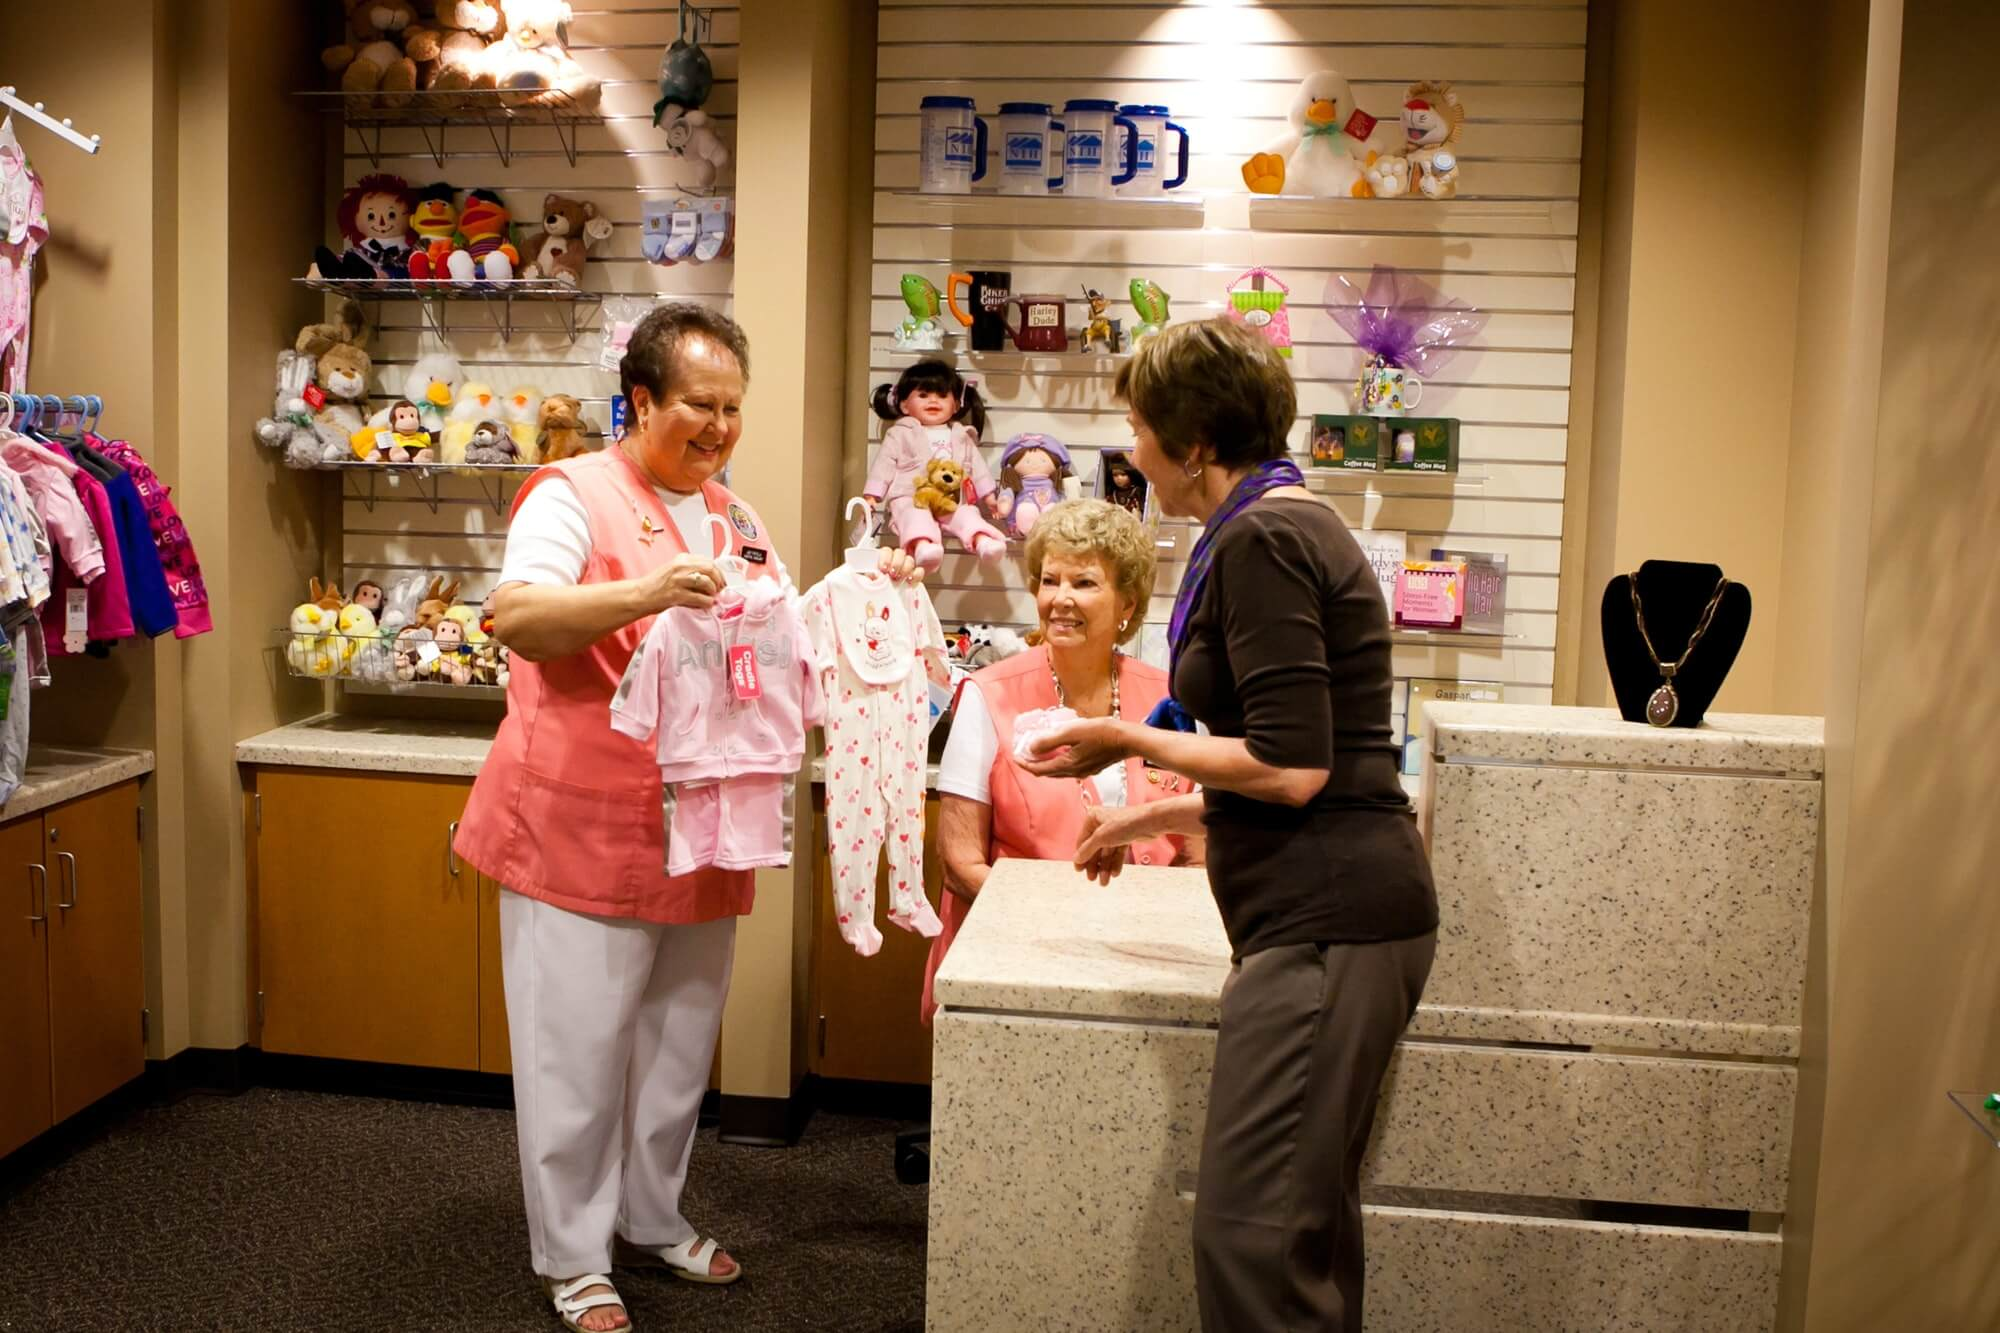 NIH Auxiliary President Judy Fratella shows a patron some of the baby gifts available at the Gift Shop as Auxiliary member Shirley Stone looks on. Photo by Michael Cooke